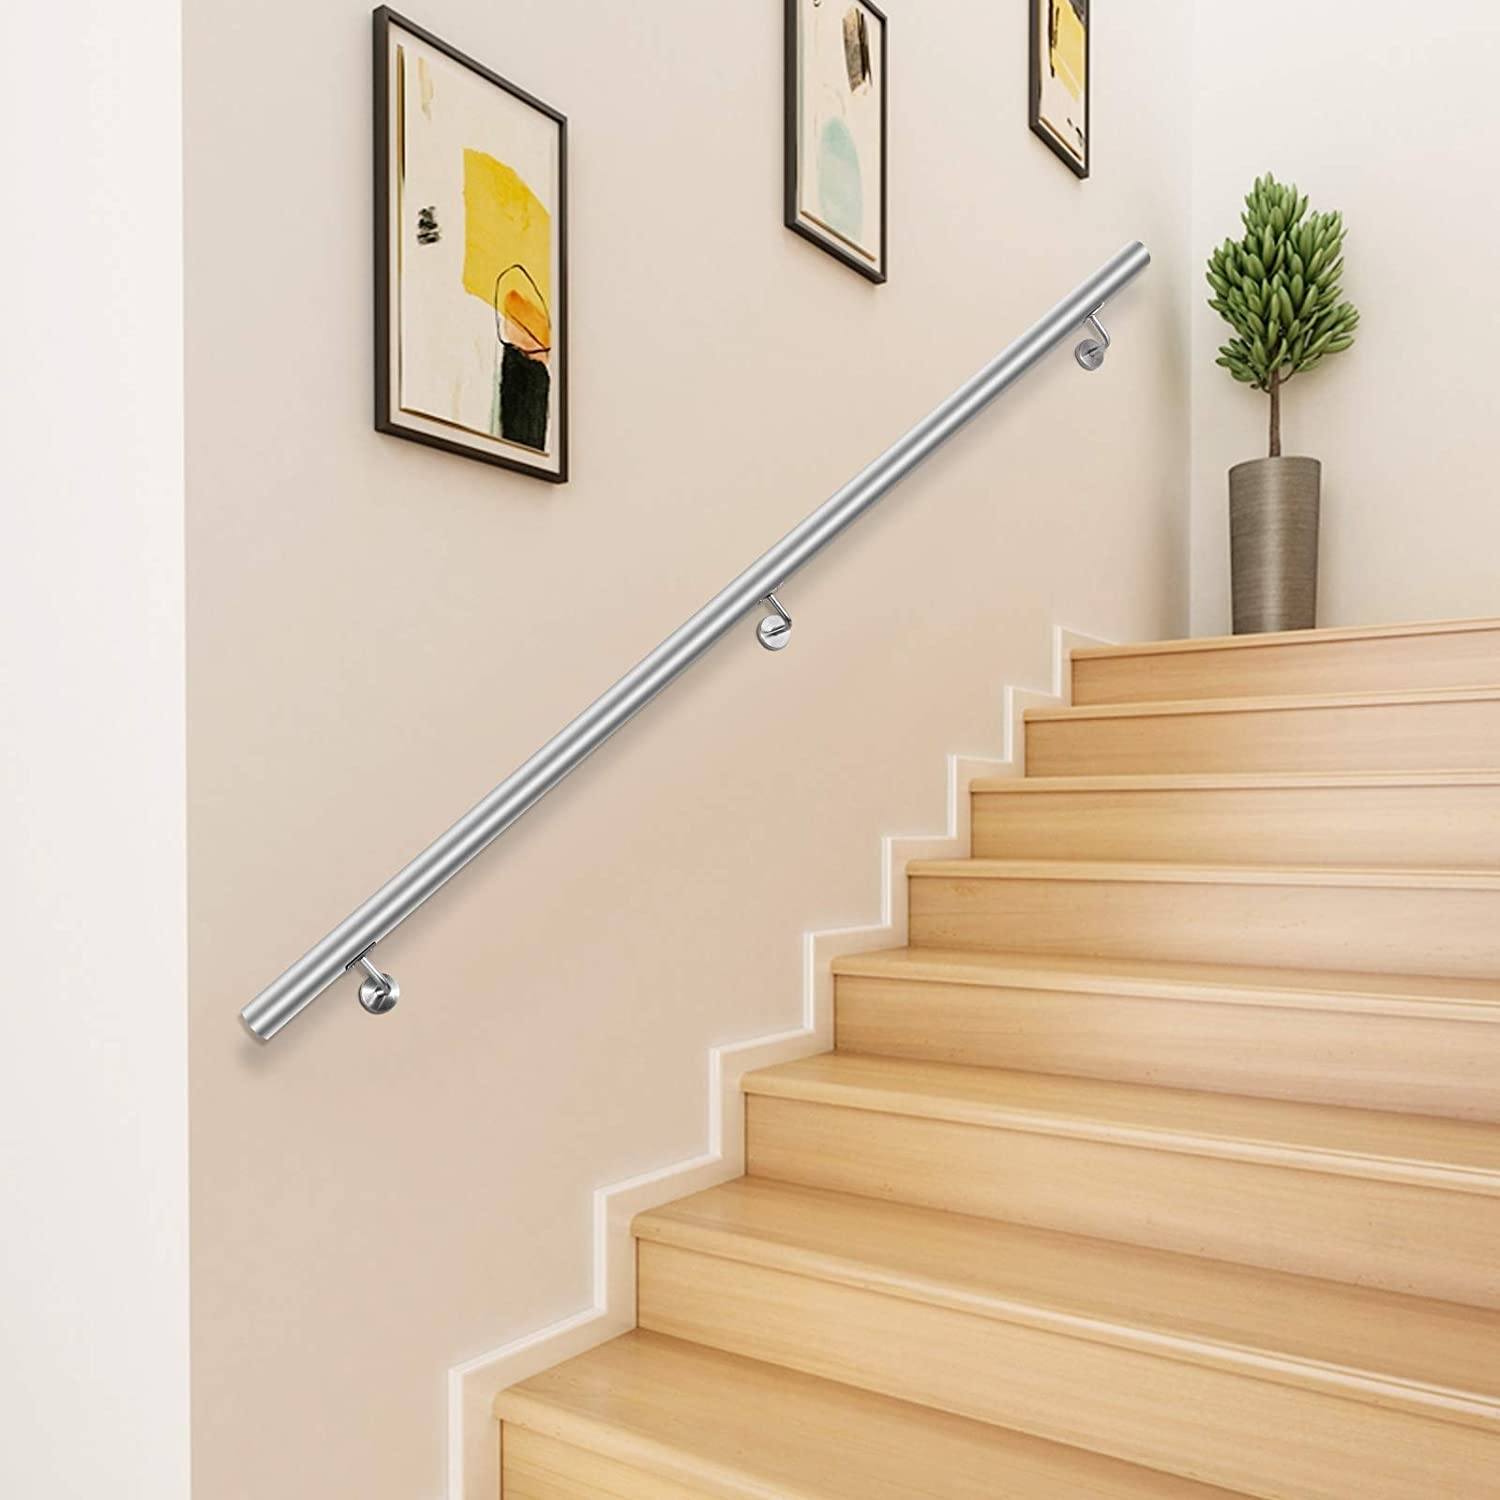 Happybuy 3 Feet Stair Handrail Stainless Steel Wall Stair Rail | Interior Stairs And Railings | Traditional | Living Room | Crystal | Rectangular Tube | Inside